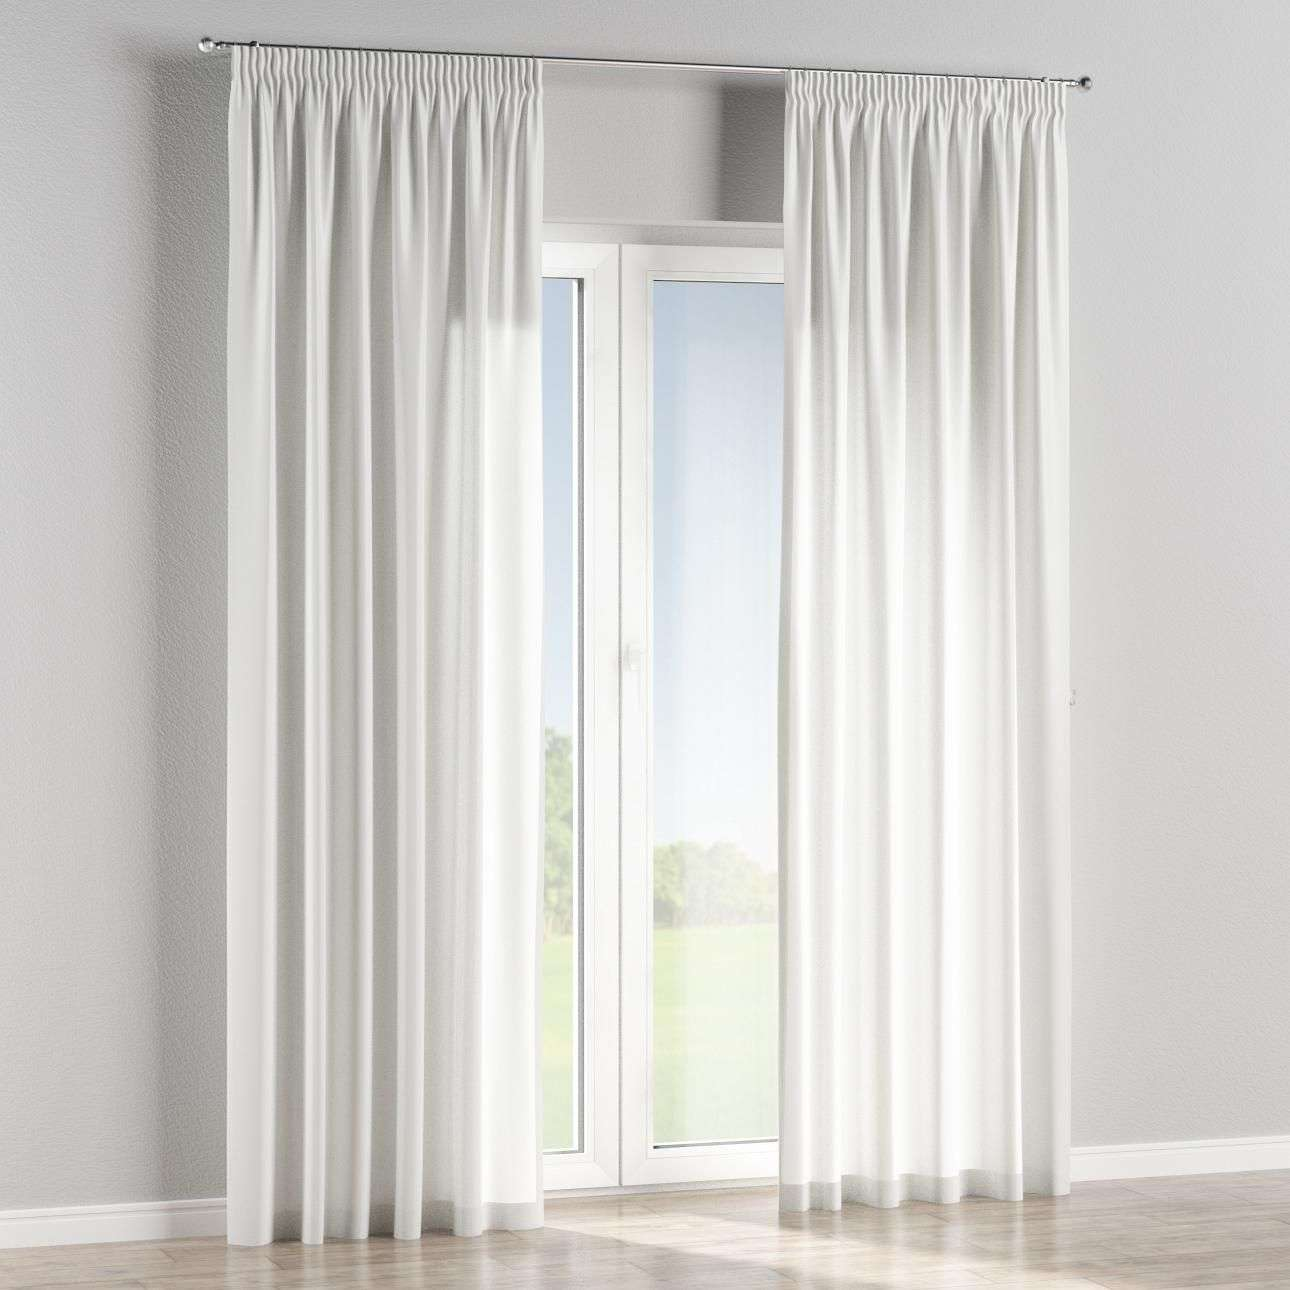 Pencil pleat lined curtains in collection Marina, fabric: 140-15